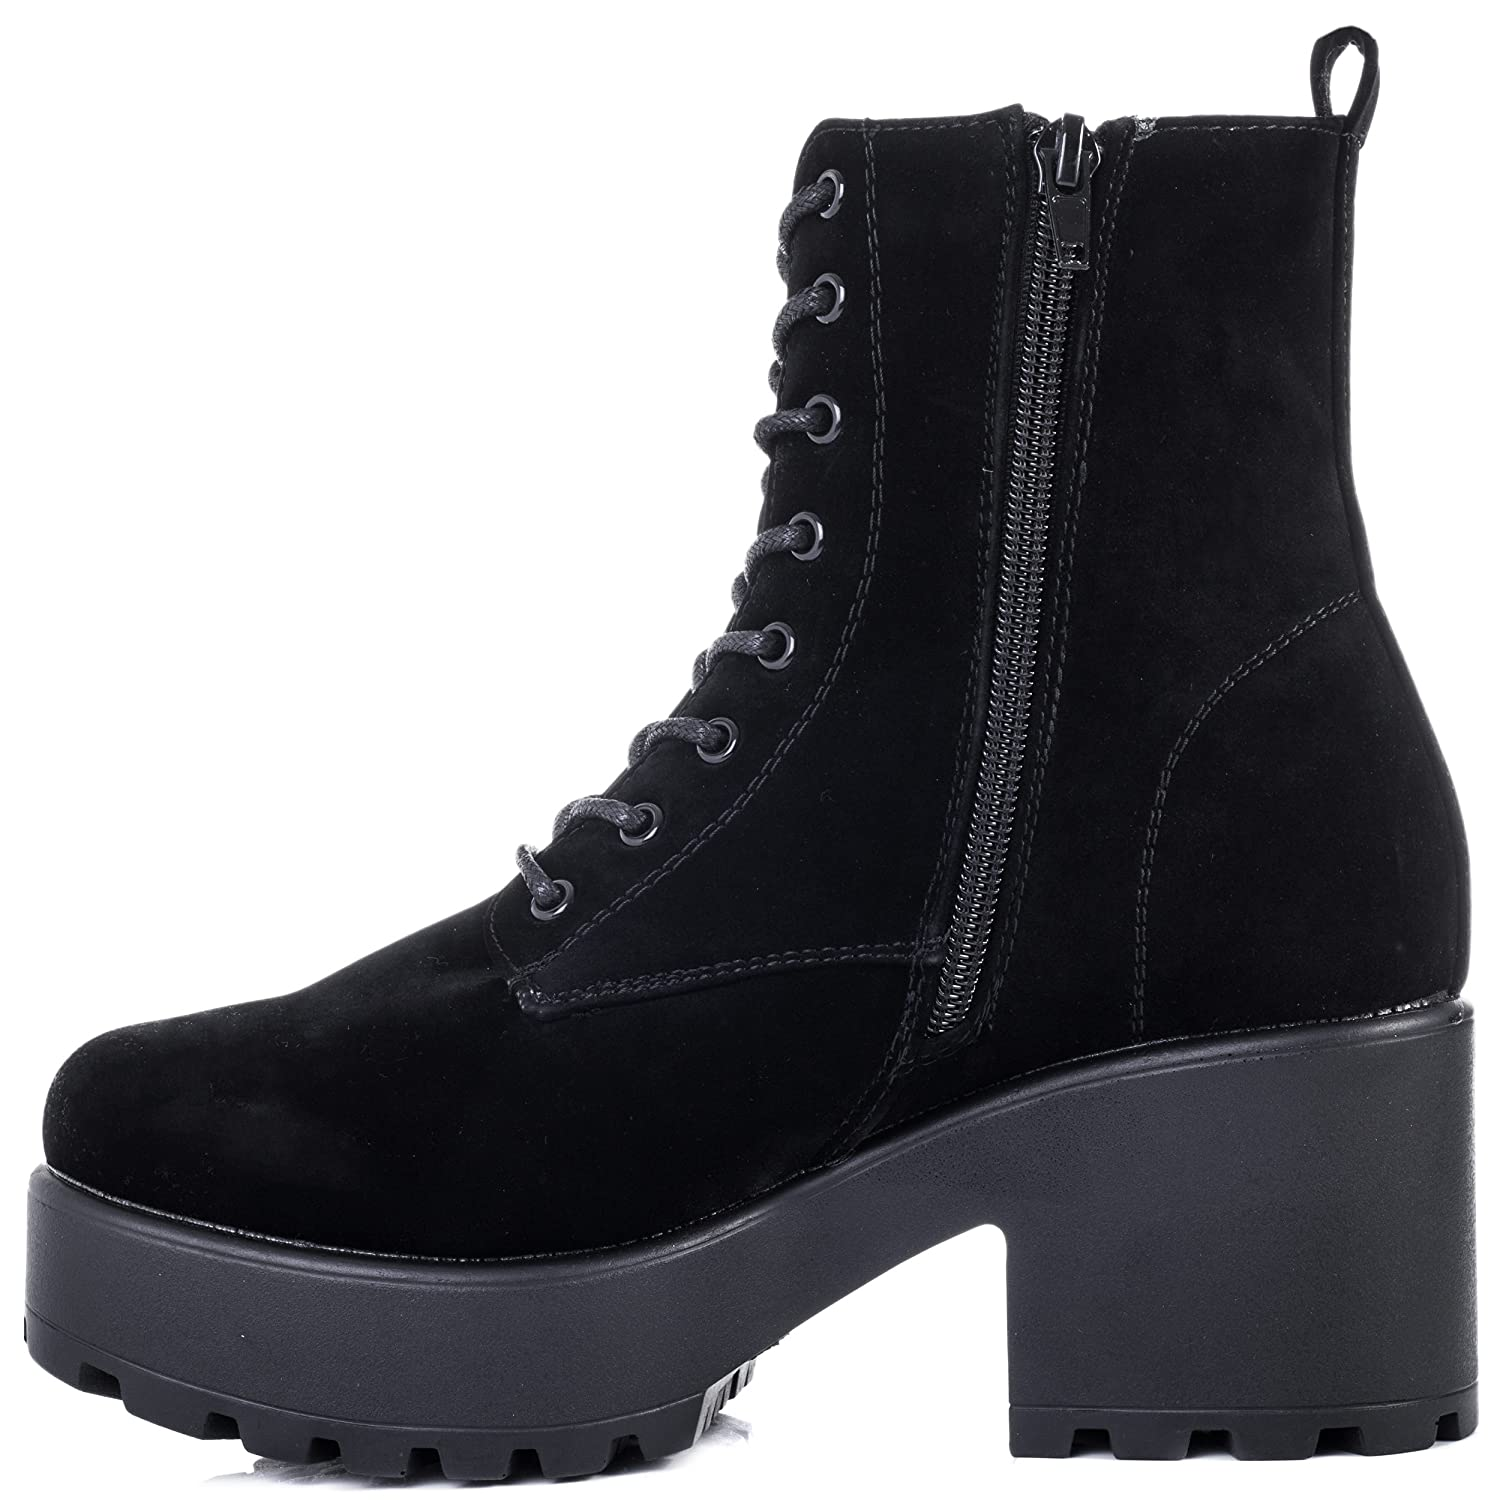 618cde59c592 SPYLOVEBUY SHOTGUN Women s Lace Up Cleated Sole Platform Block Heel Ankle  Boots Pumps  Amazon.ca  Sports   Outdoors